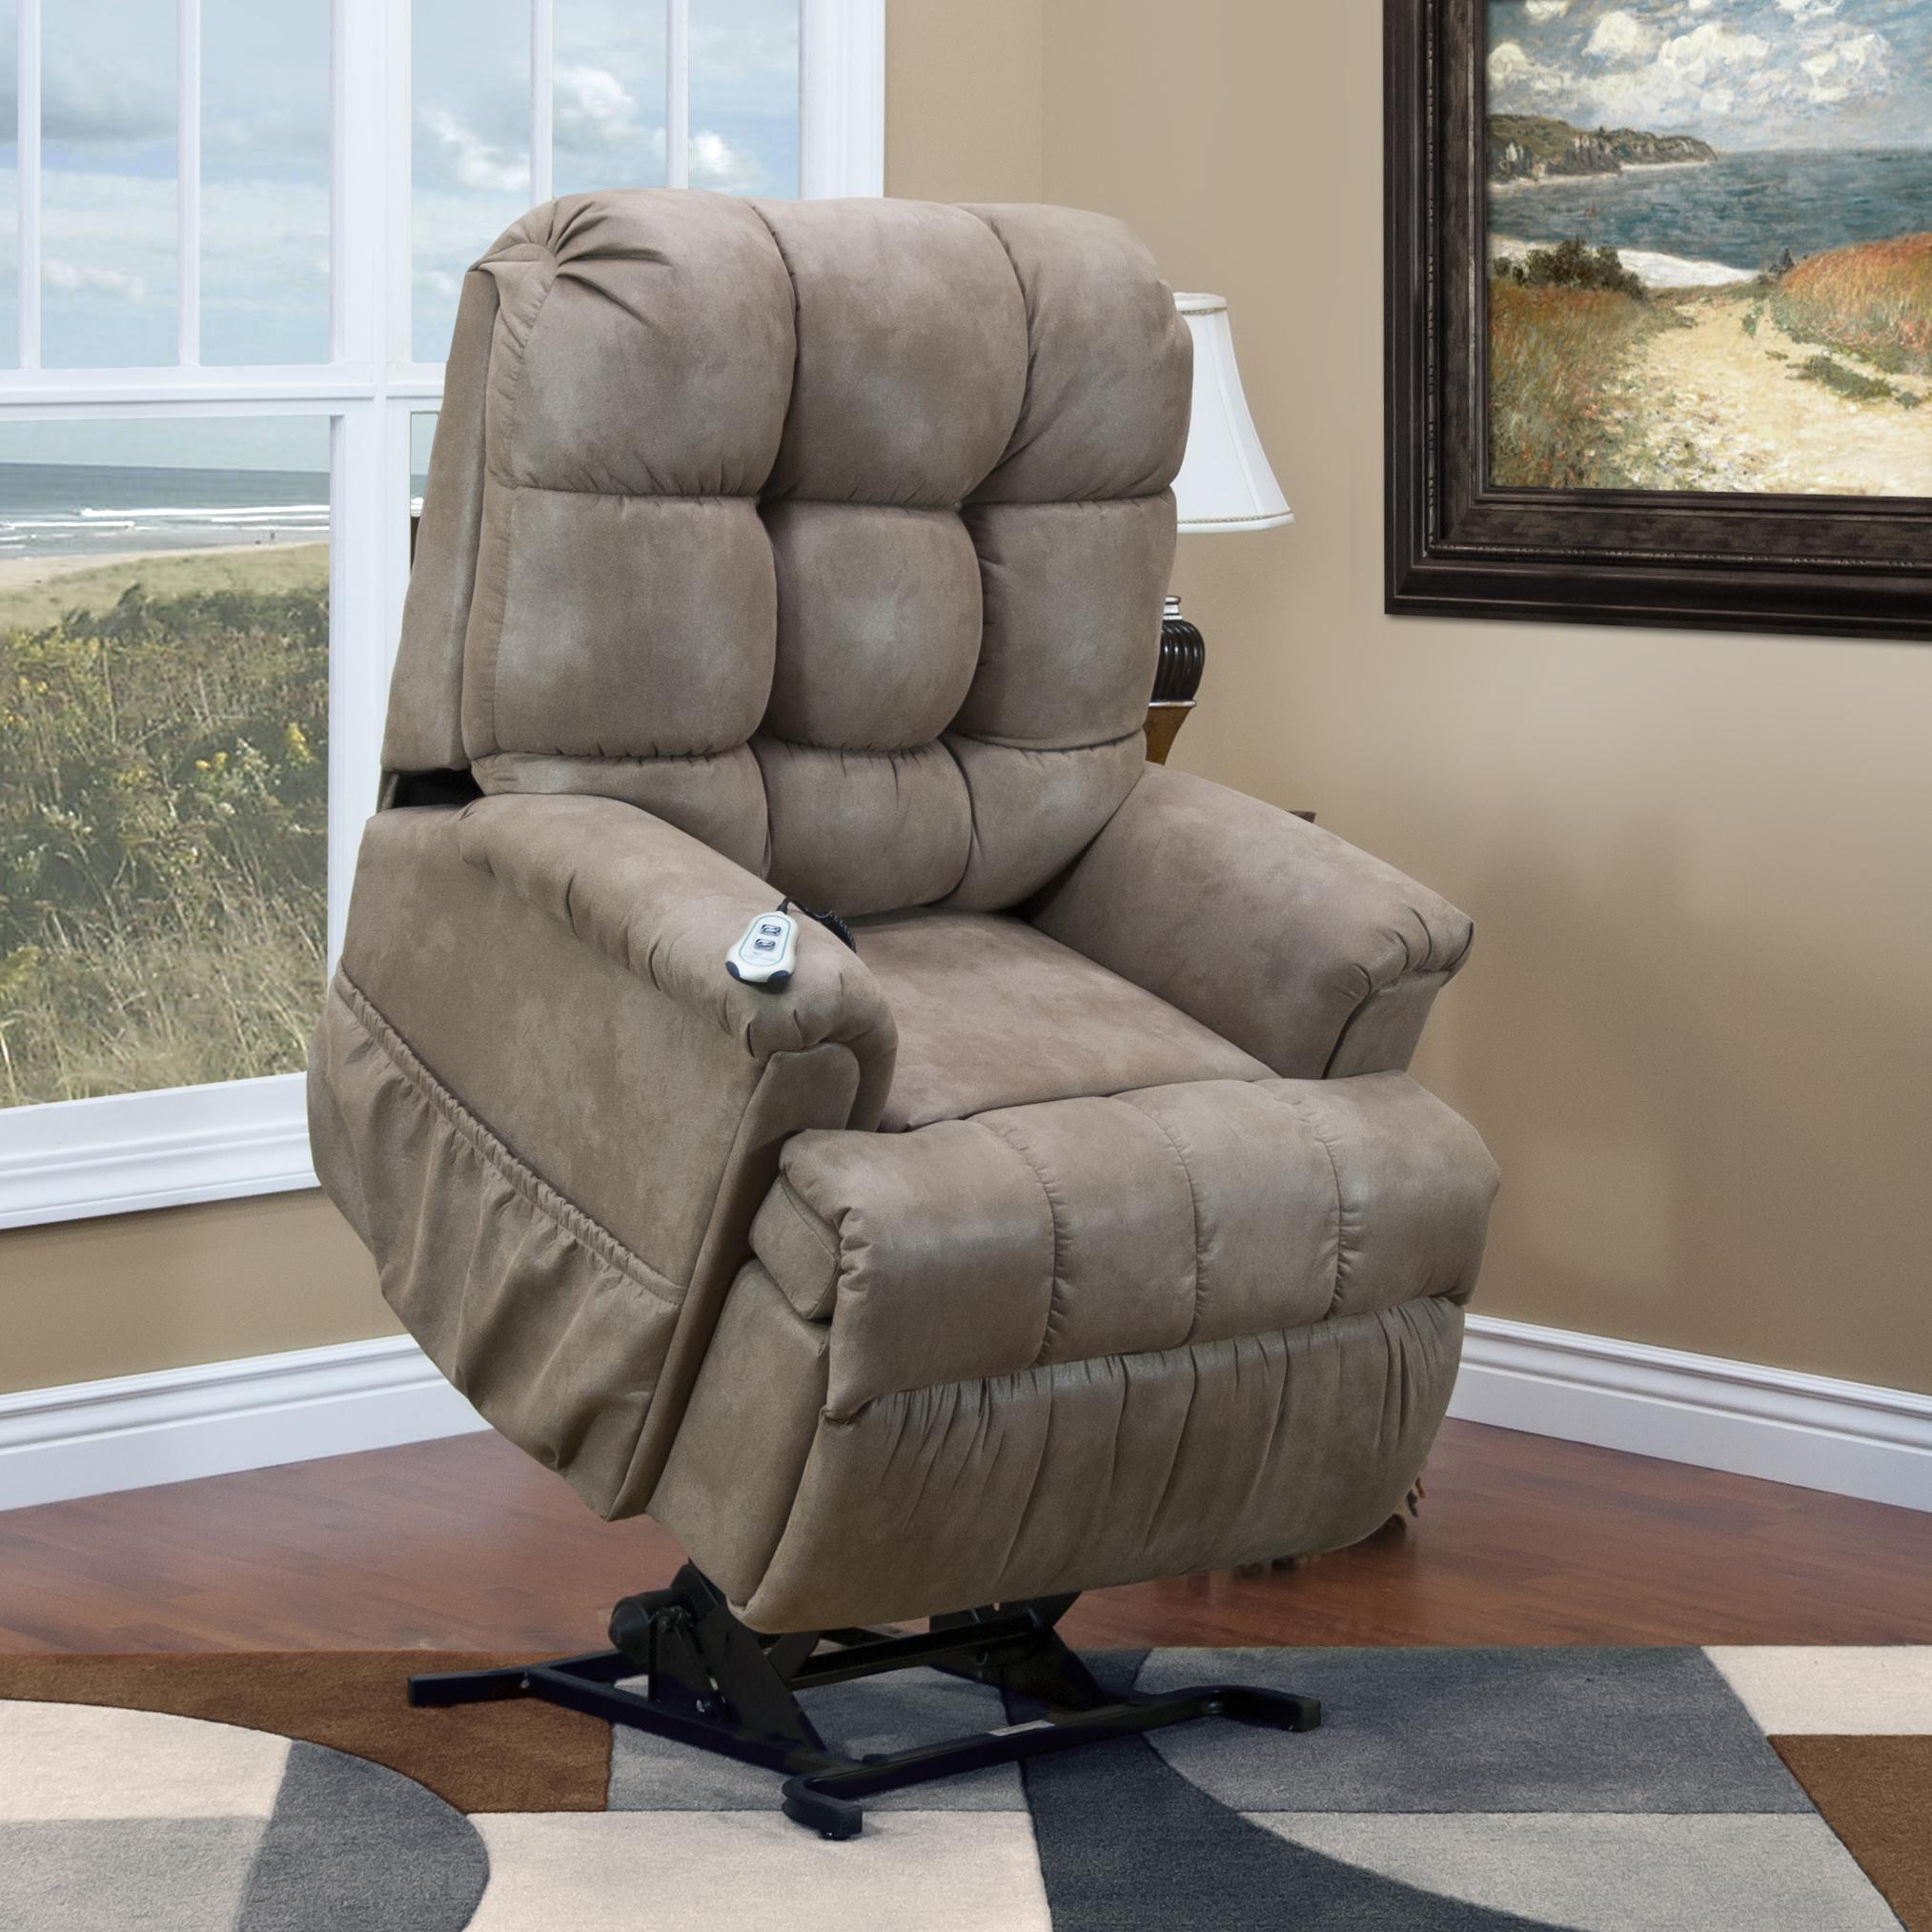 Med Lift Chairs Med Lift And Mobility 5500 Wall Away Lift Recliner With